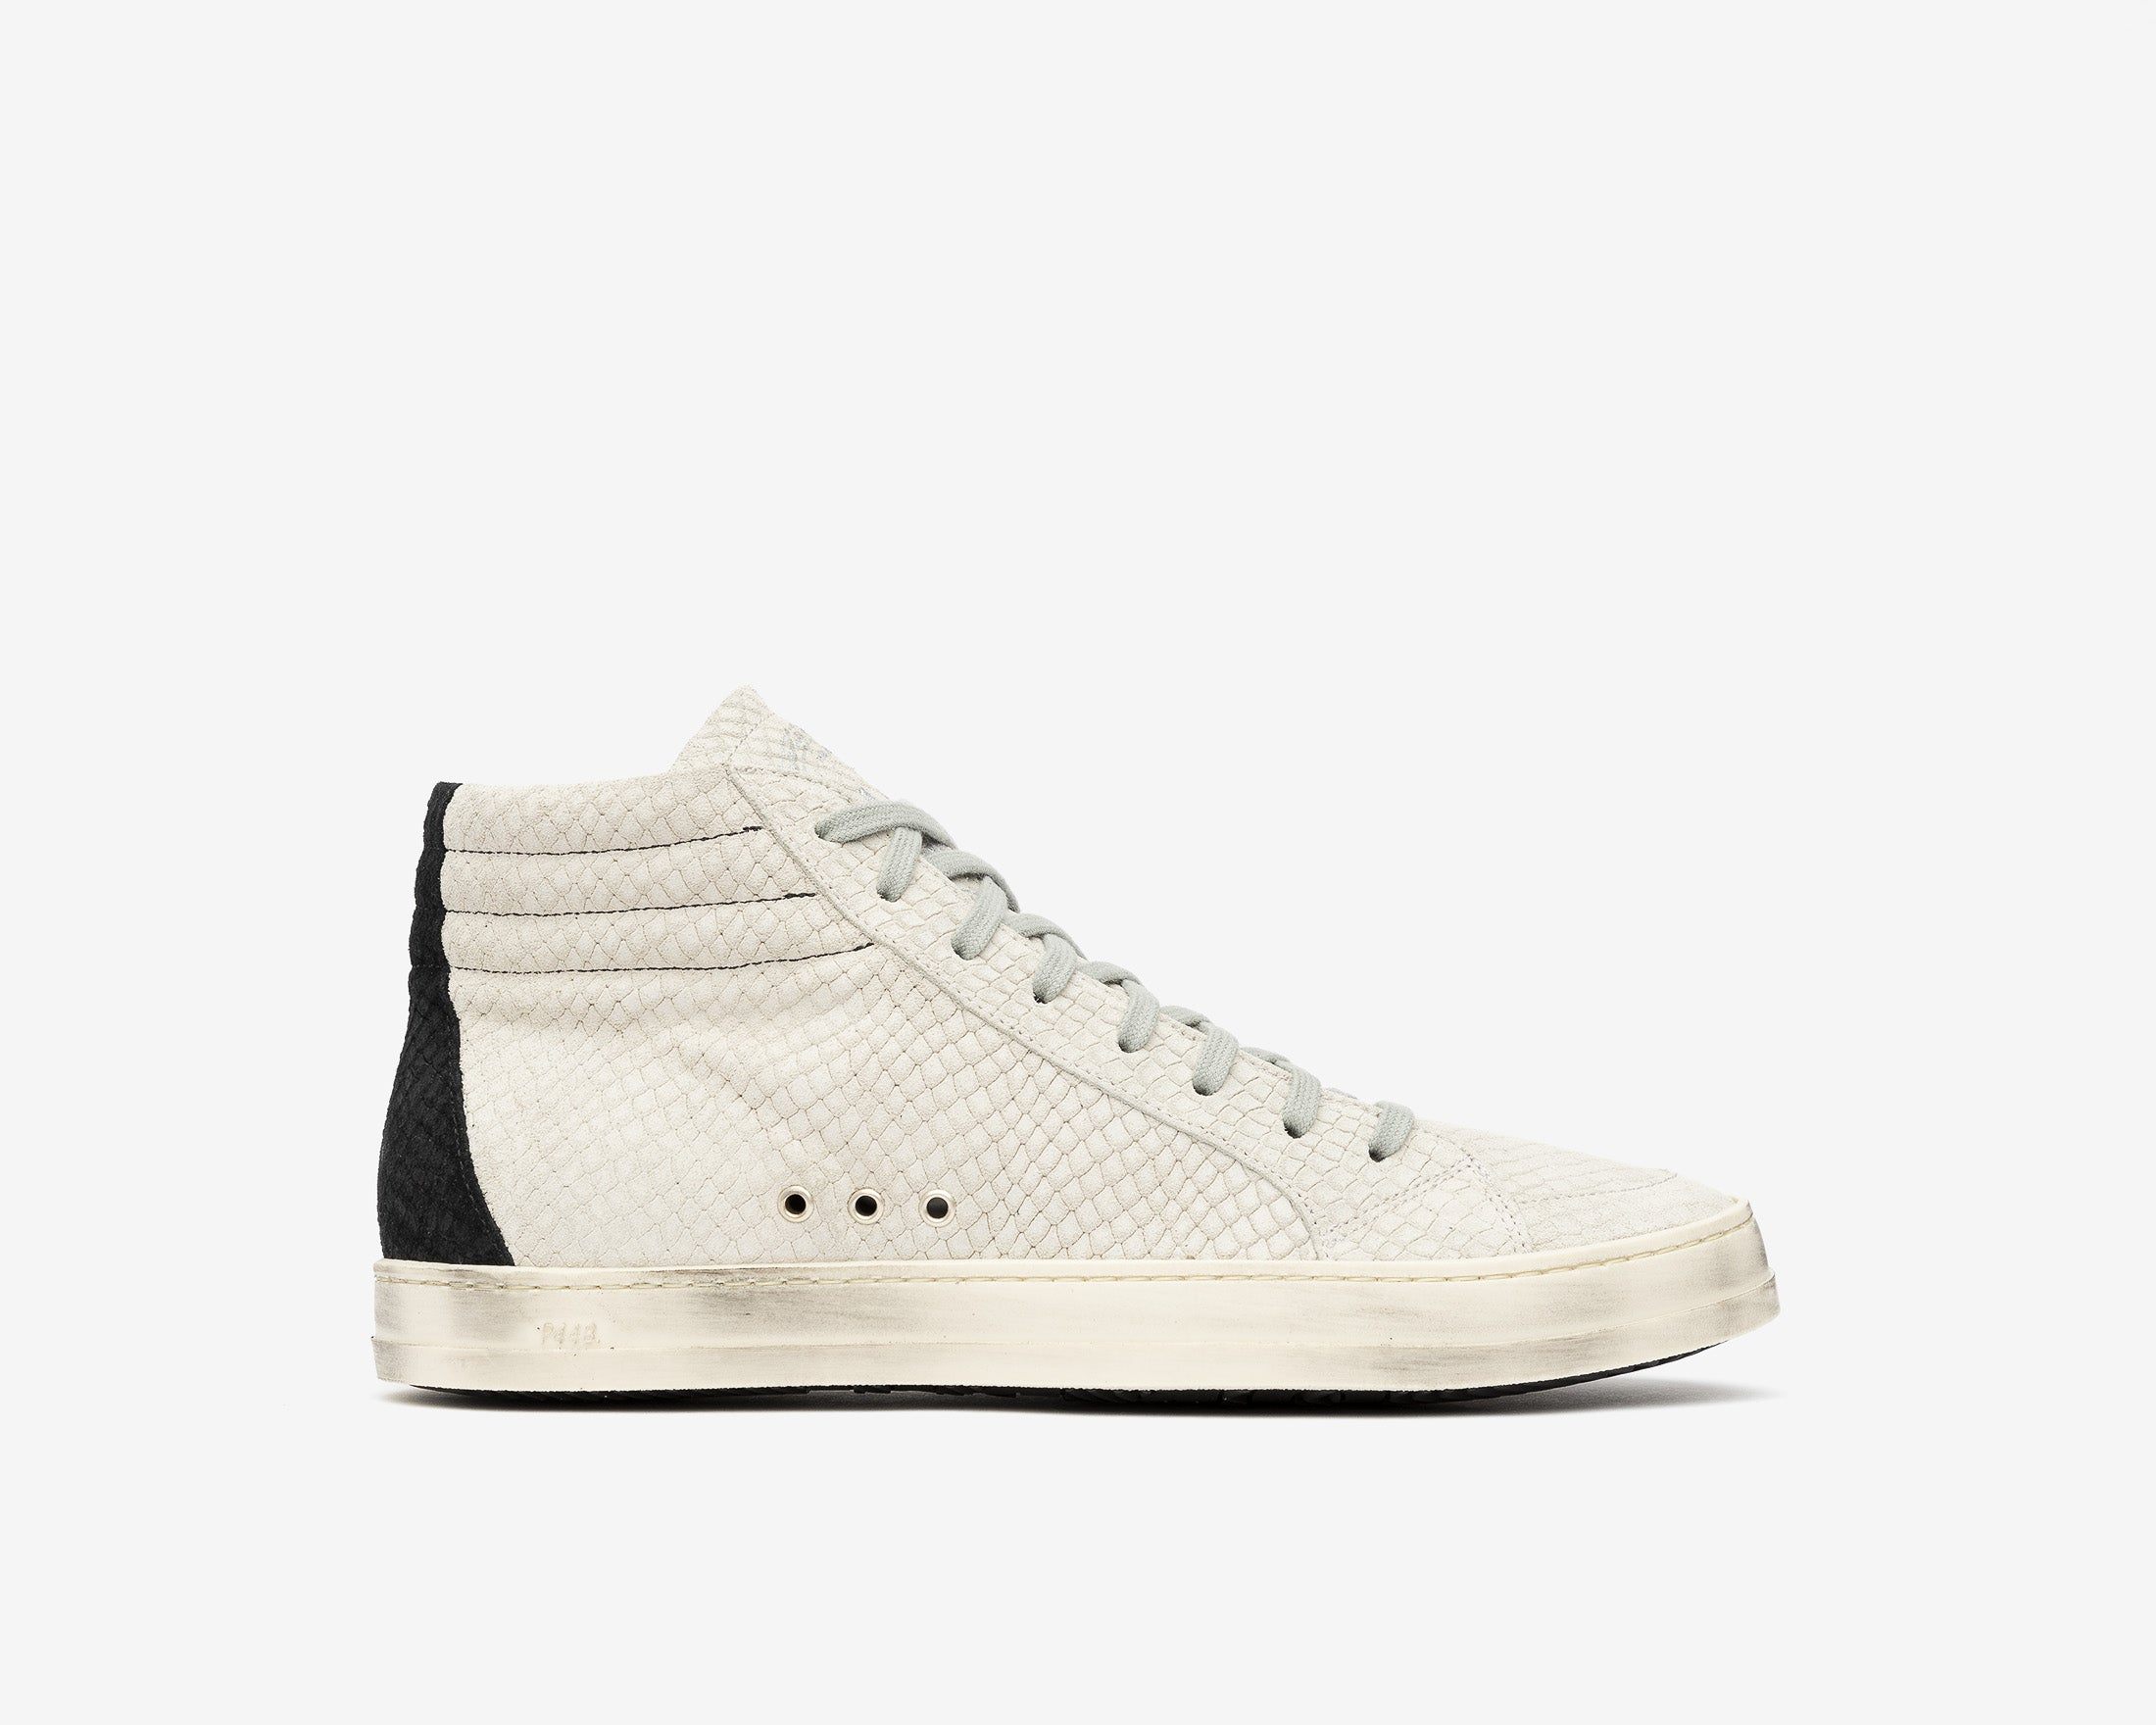 SkateBS High-Top Sneaker in MultiSnake - Profile